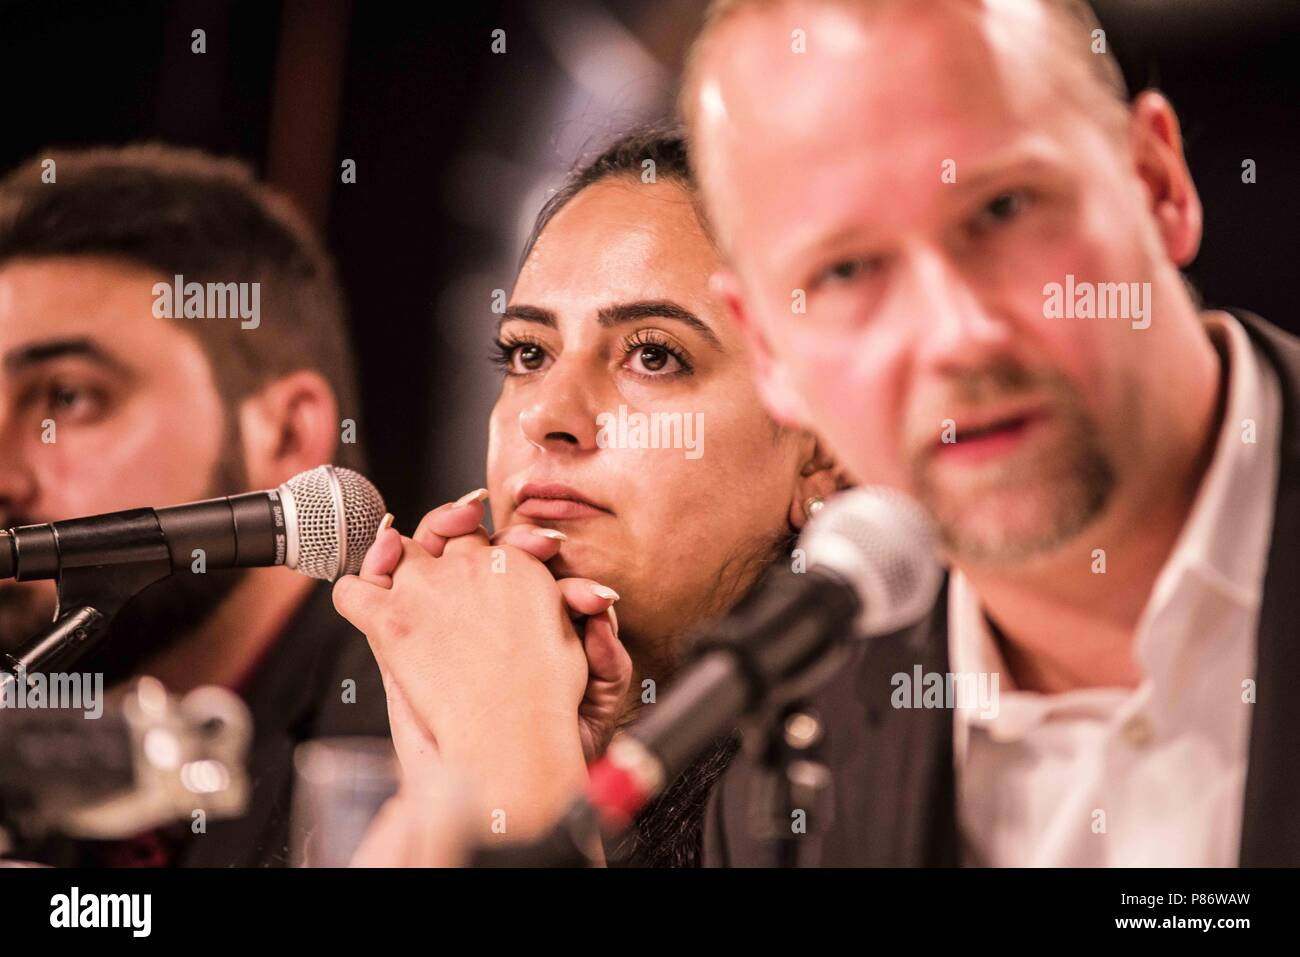 Murder Cell Stock Photos & Murder Cell Stock Images - Alamy